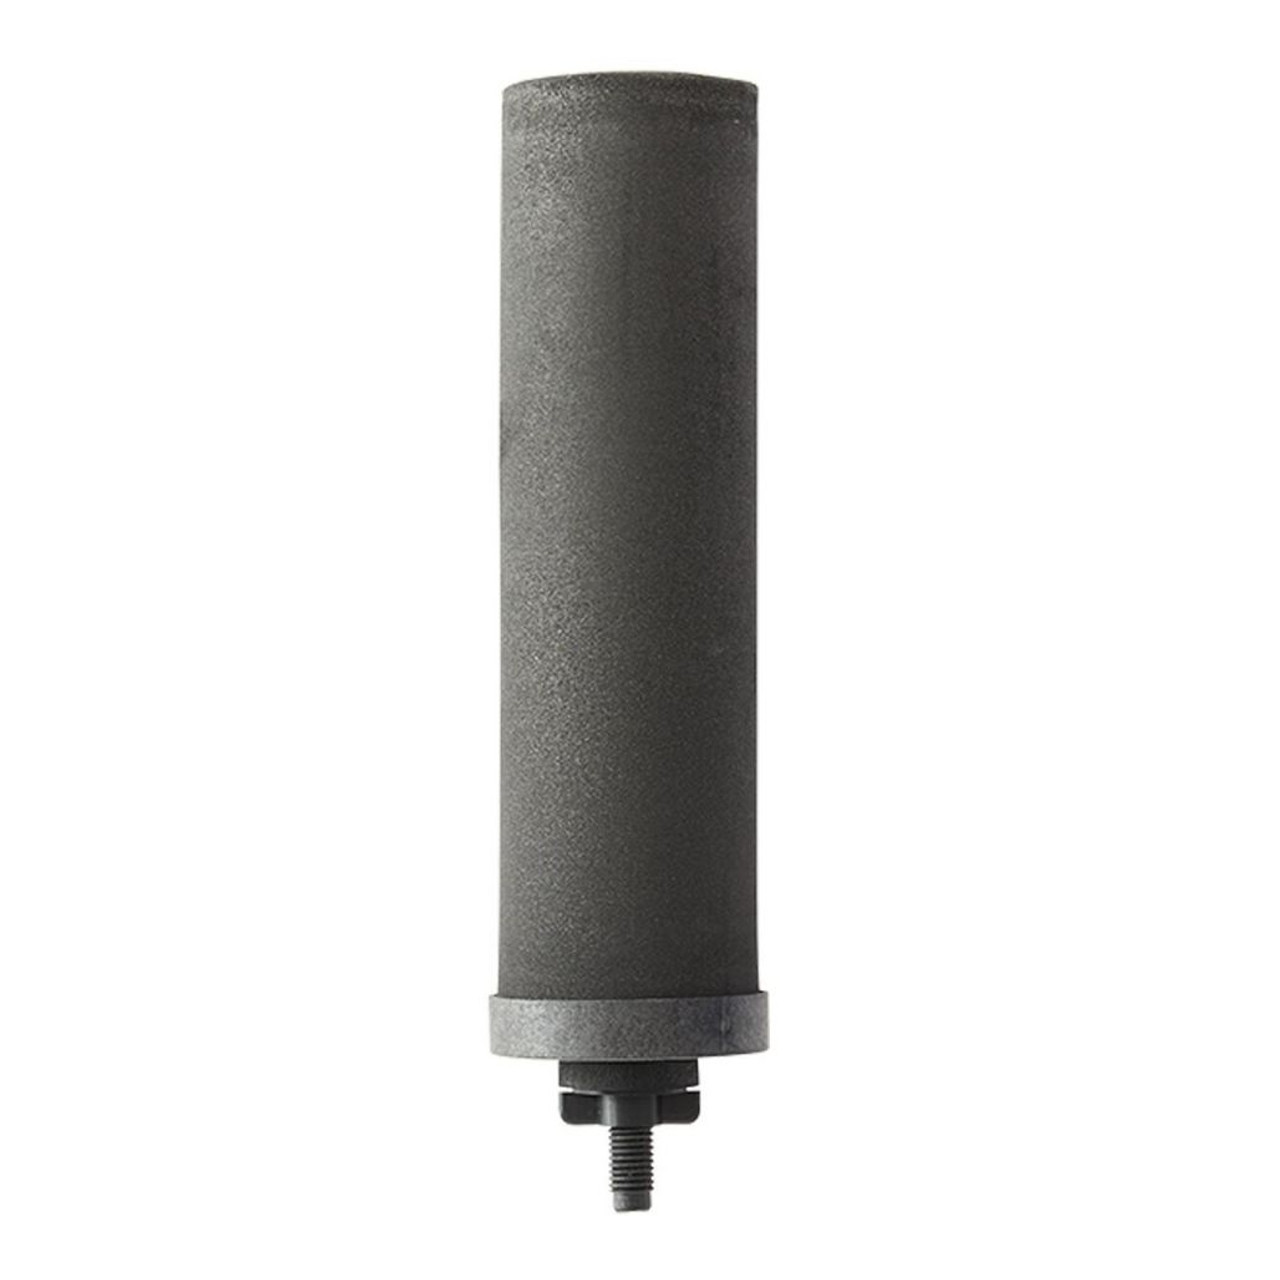 Charcoal Element for Berkey water purification